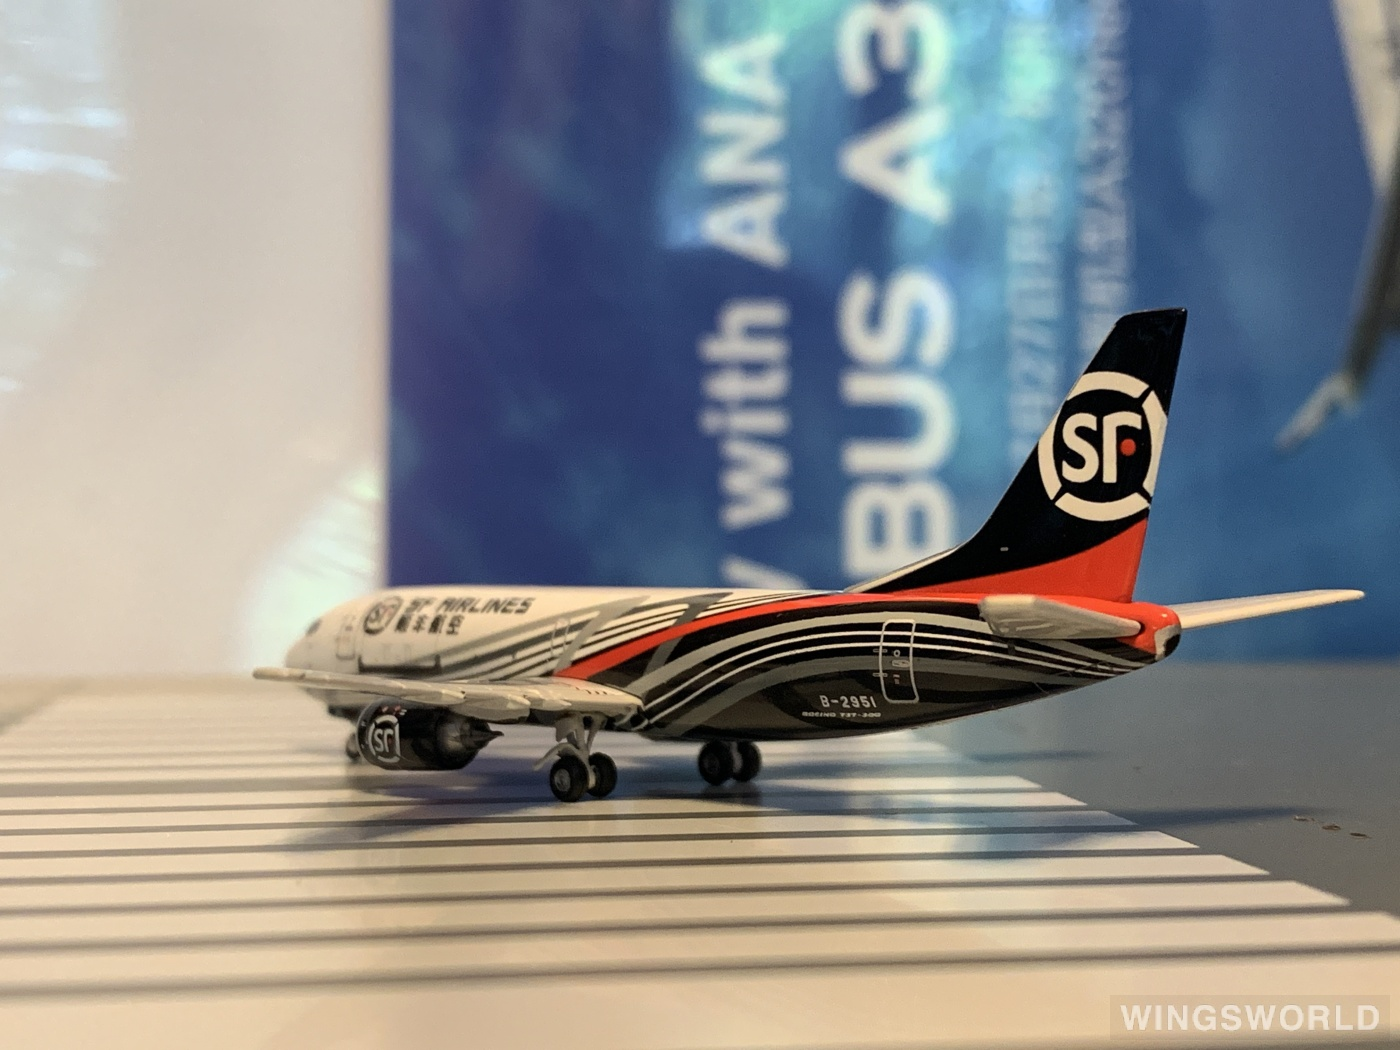 Phoenix 1:400 PH10784 SF Airlines 顺丰航空 Boeing 737-300 B-2951